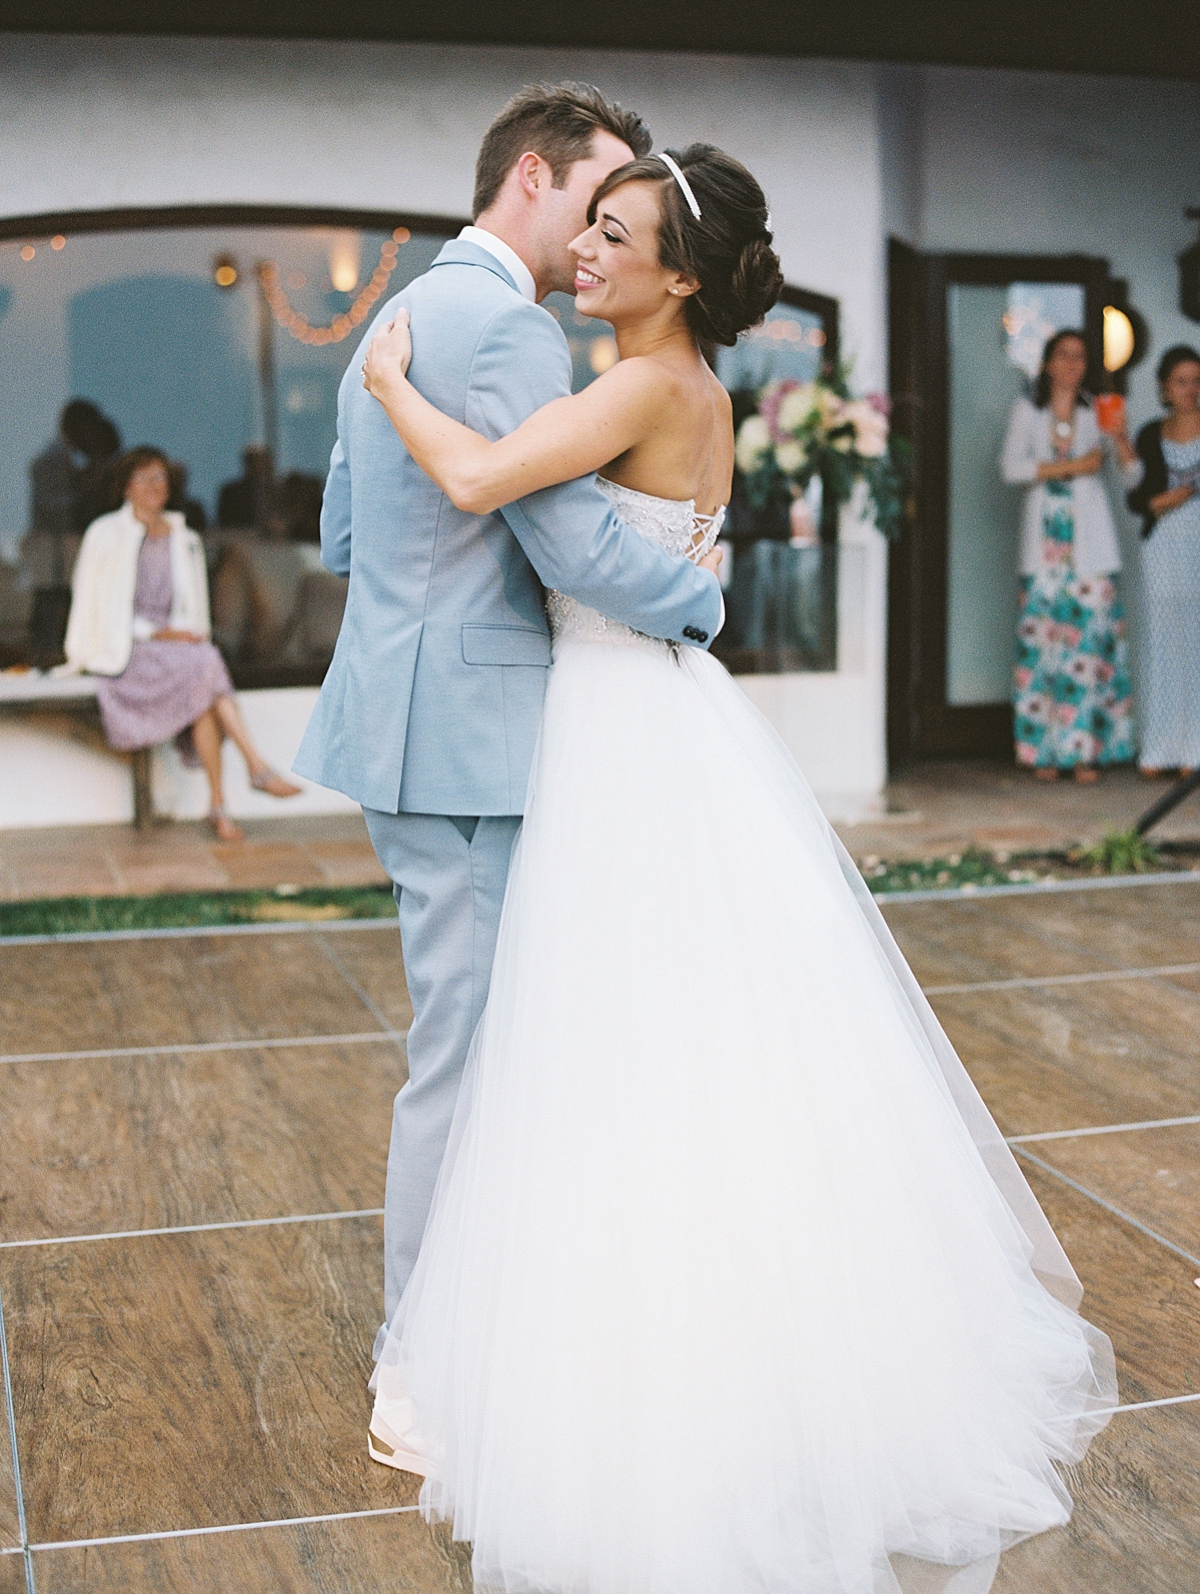 Colleen Ballinger And Joshua Evans Santa Barbara California Wedding Britta Marie Photography